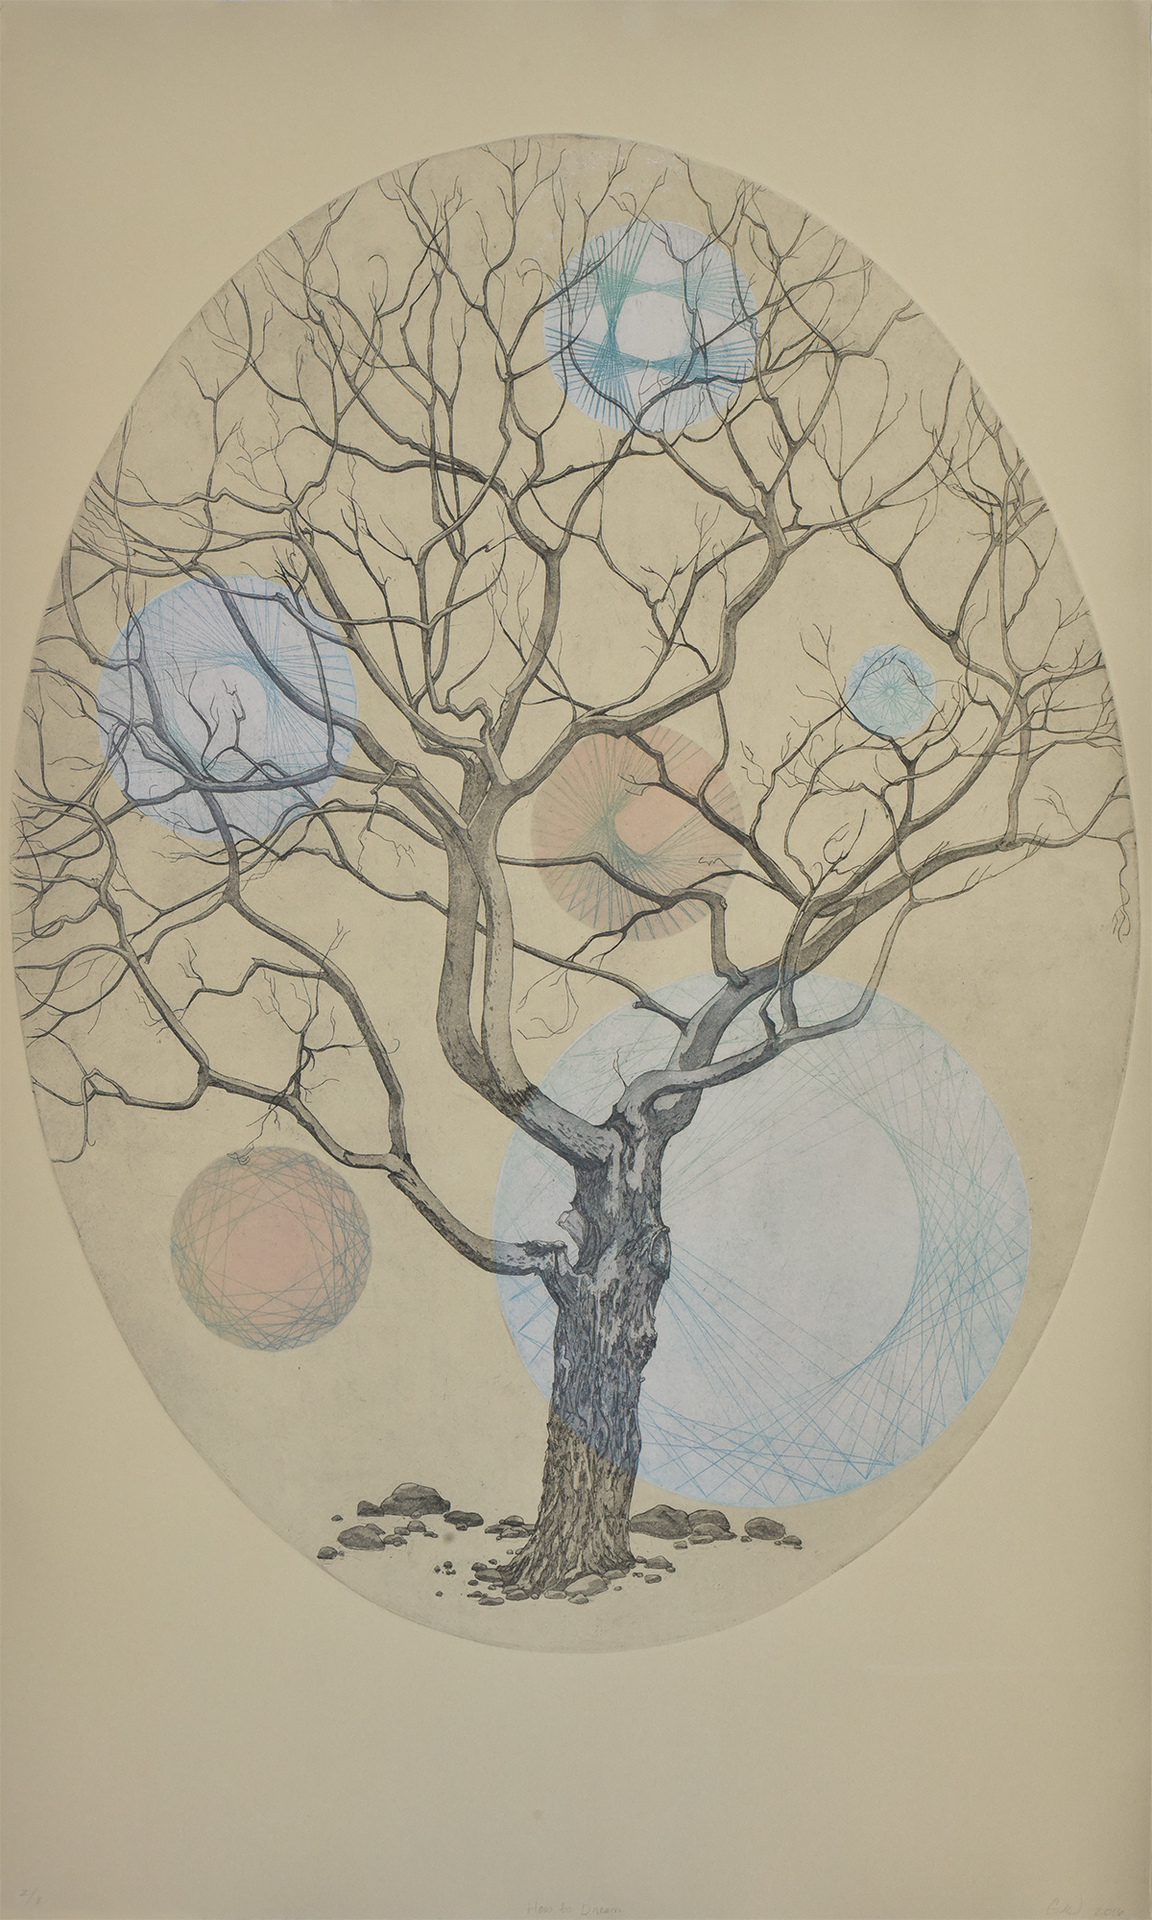 How To Dream, Gwen Miller Wagner